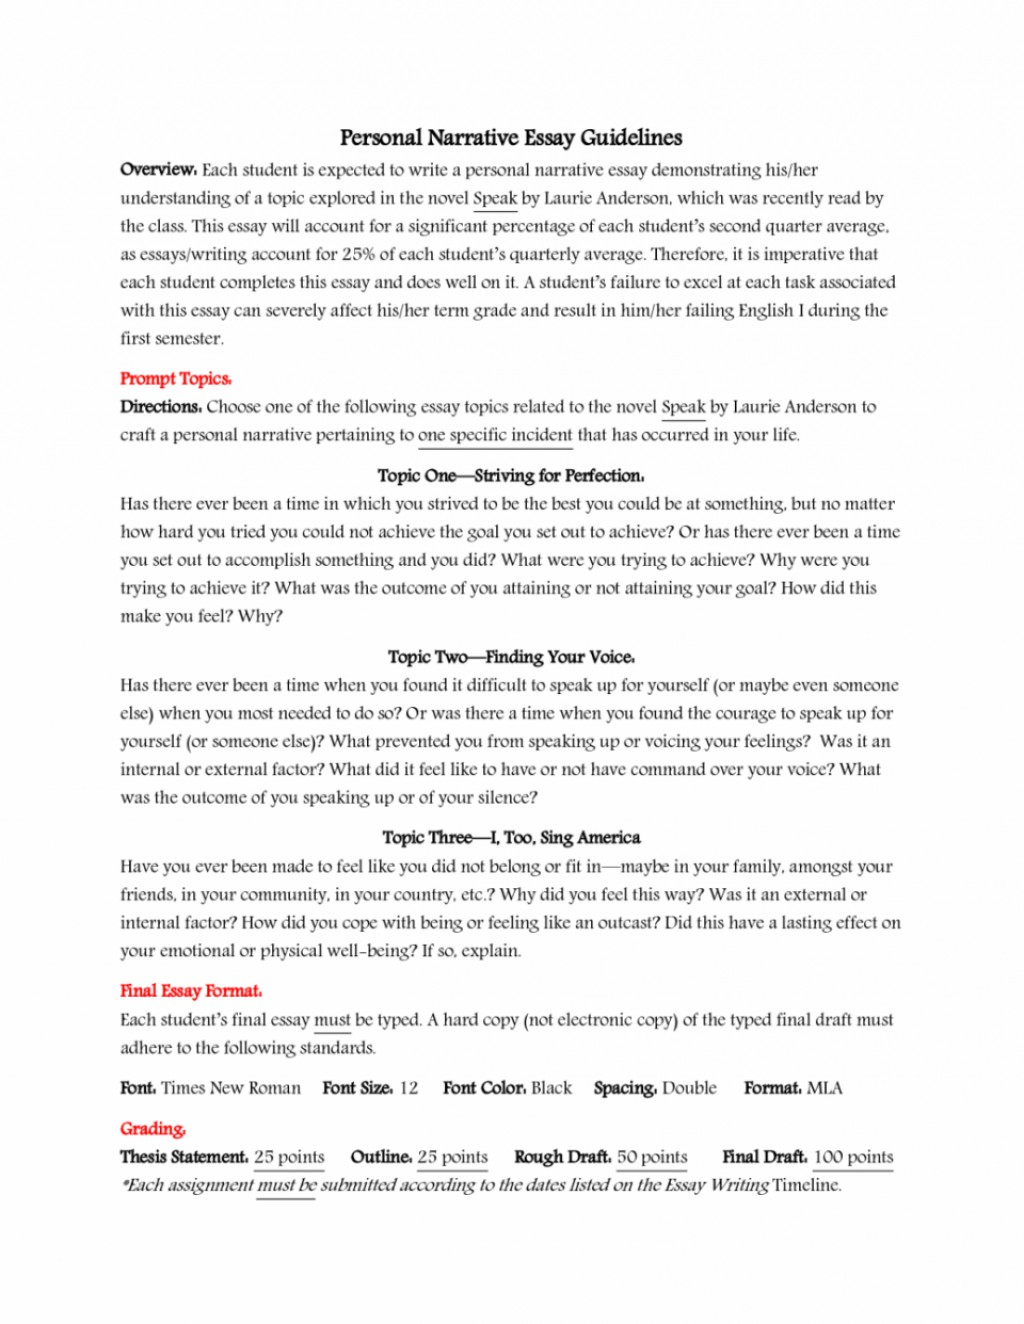 020 Example Of High Schoolsearch Paper Essay Template Writing Format For Students Great Essays Free Online Scholarships Practice Pdf Courses Contests Topics Activities Programs 960x1242 Amazing School Research Sample Senior In The Philippines Examples Thesis Statements Papers Large